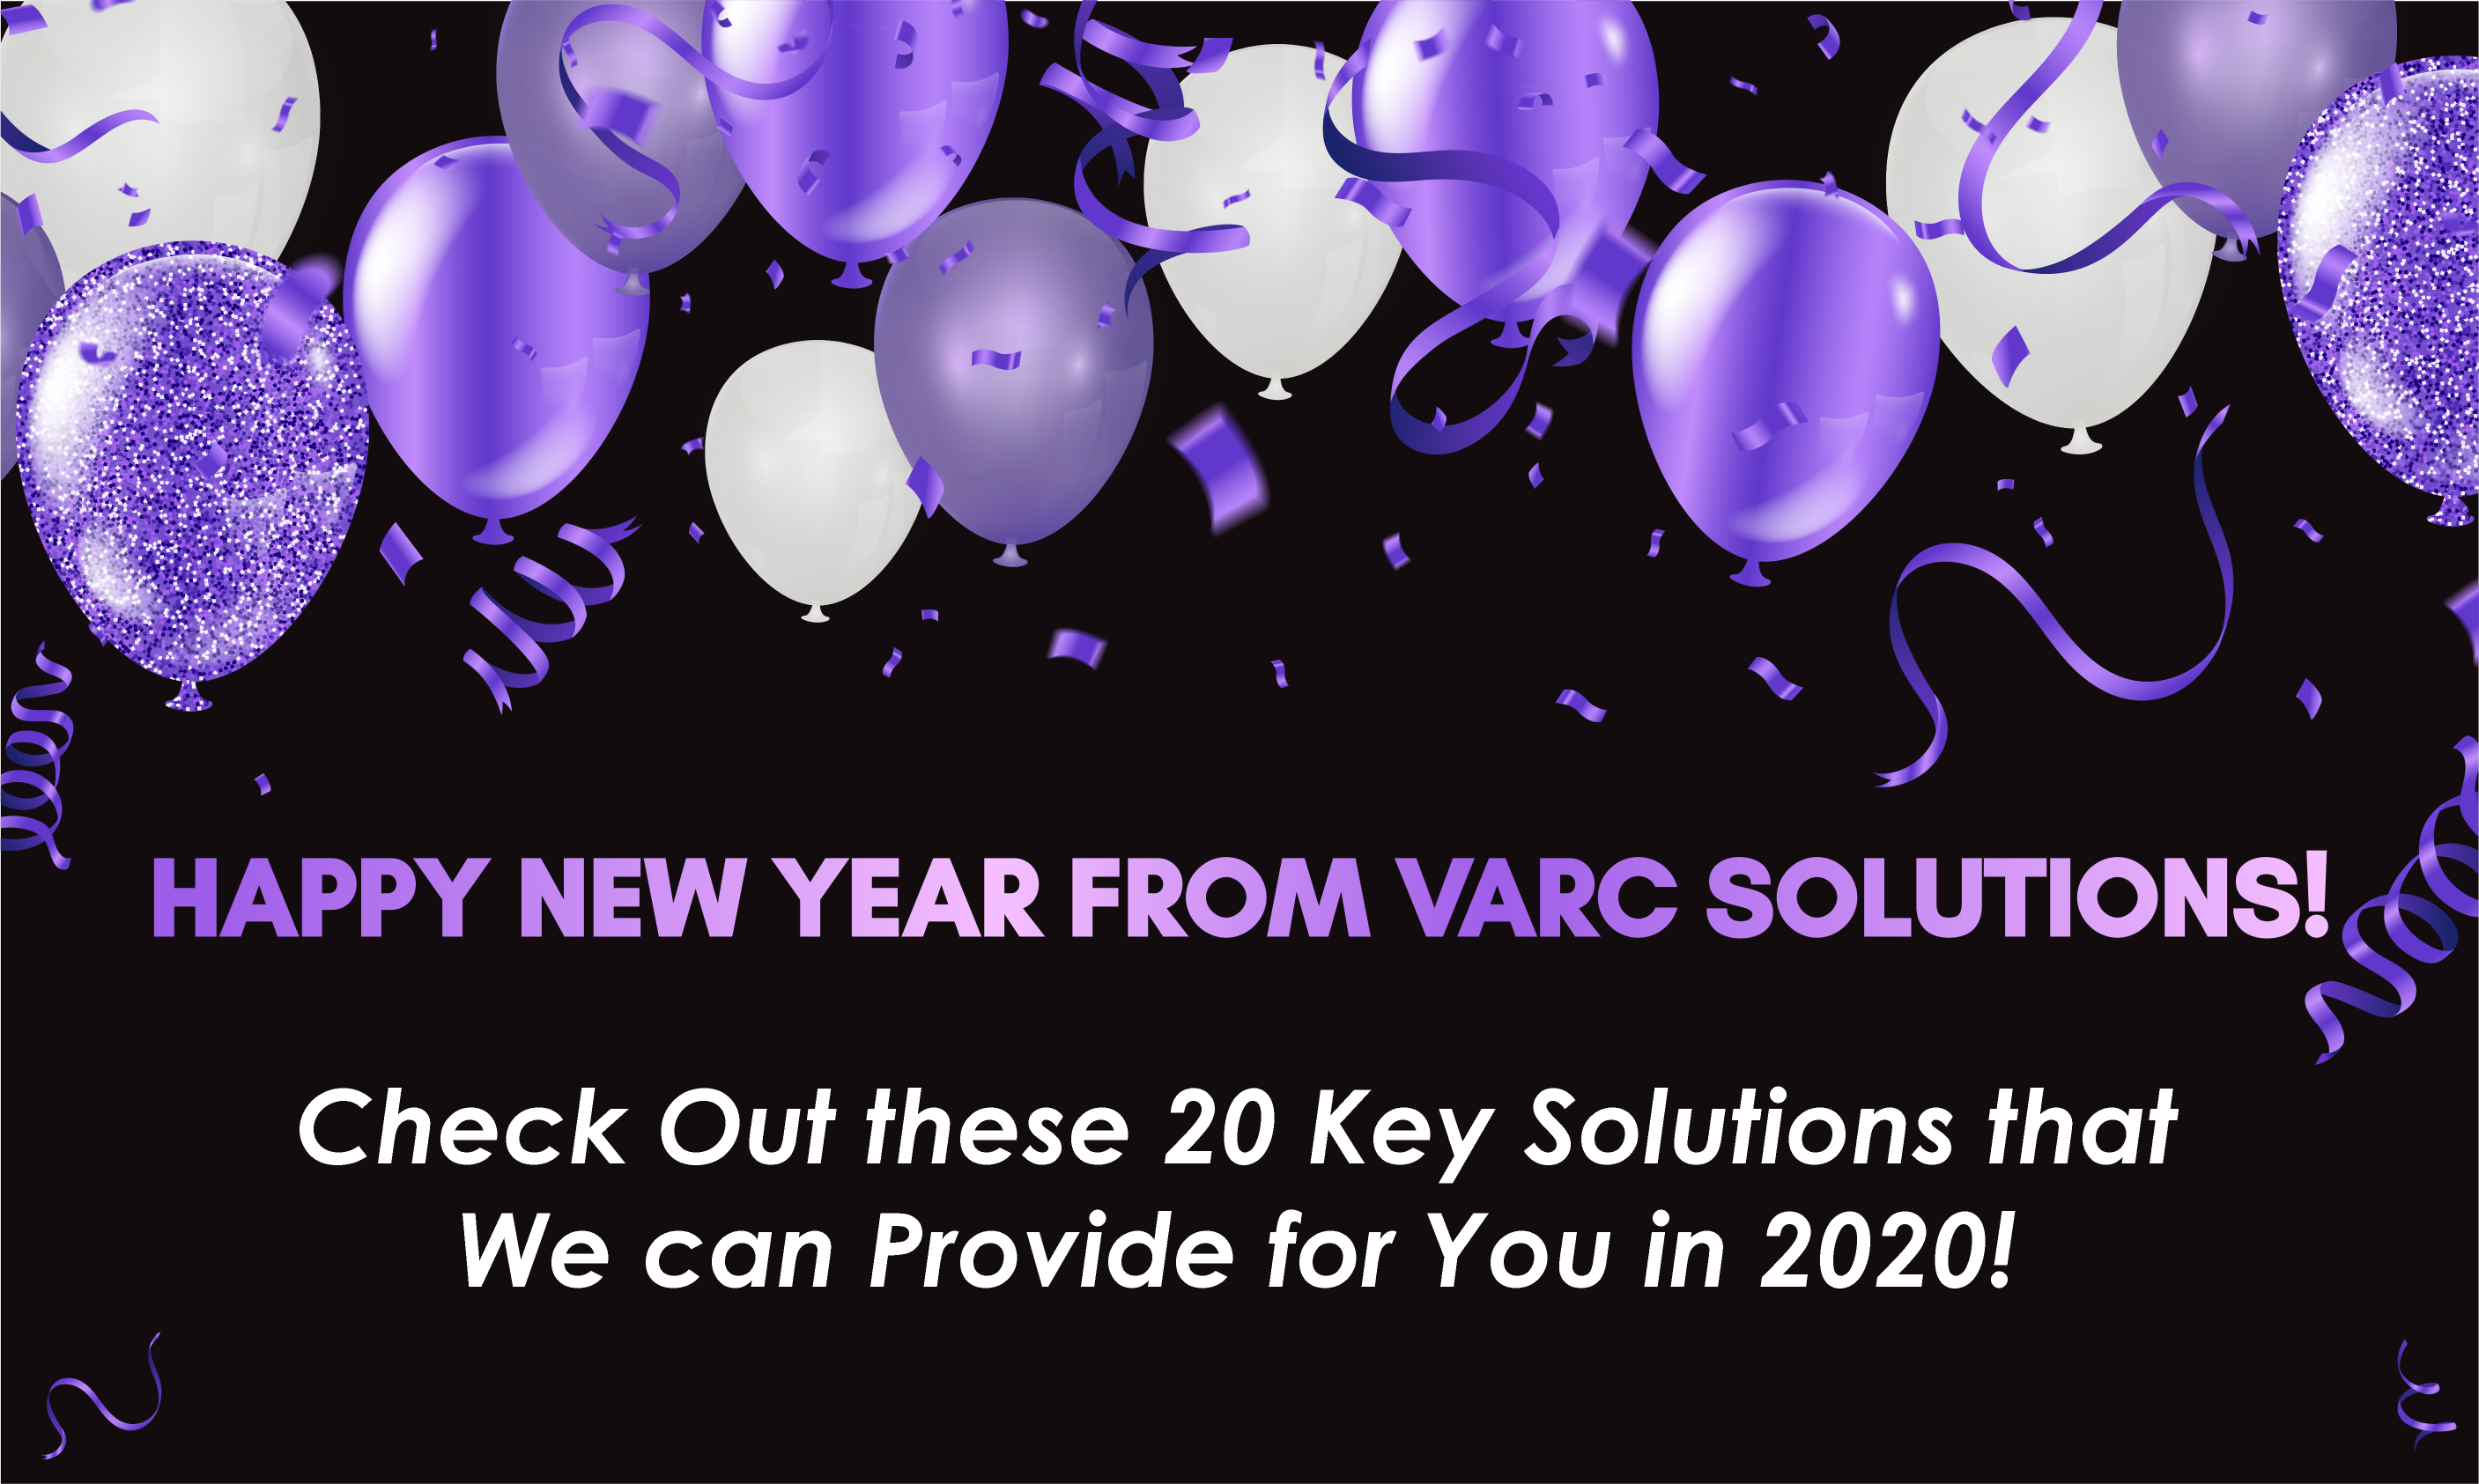 20 Key Solutions For Your Business In 2020!